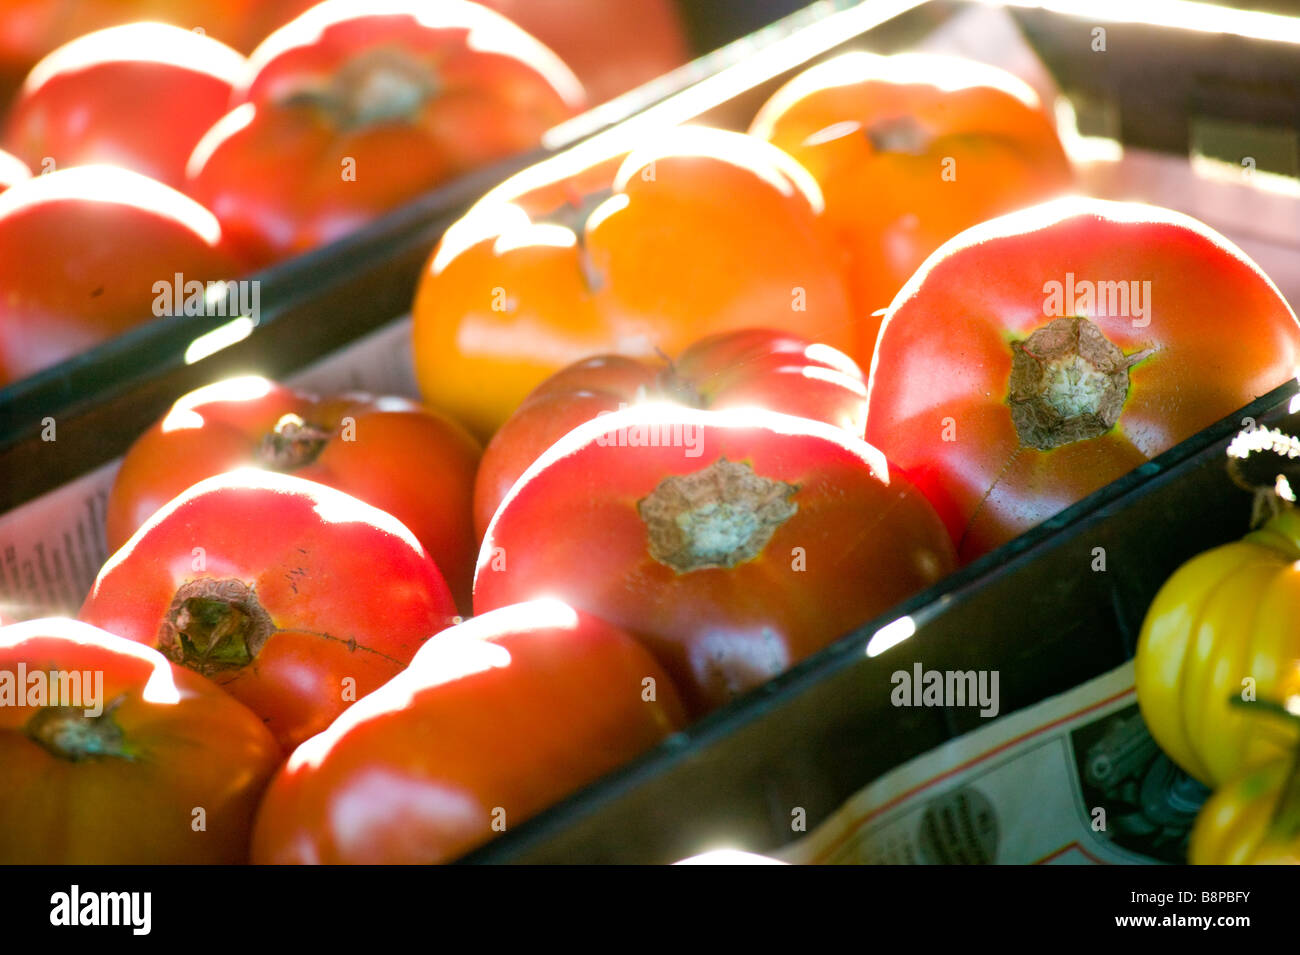 Tomatoes fresh picked ready for grading - Stock Image